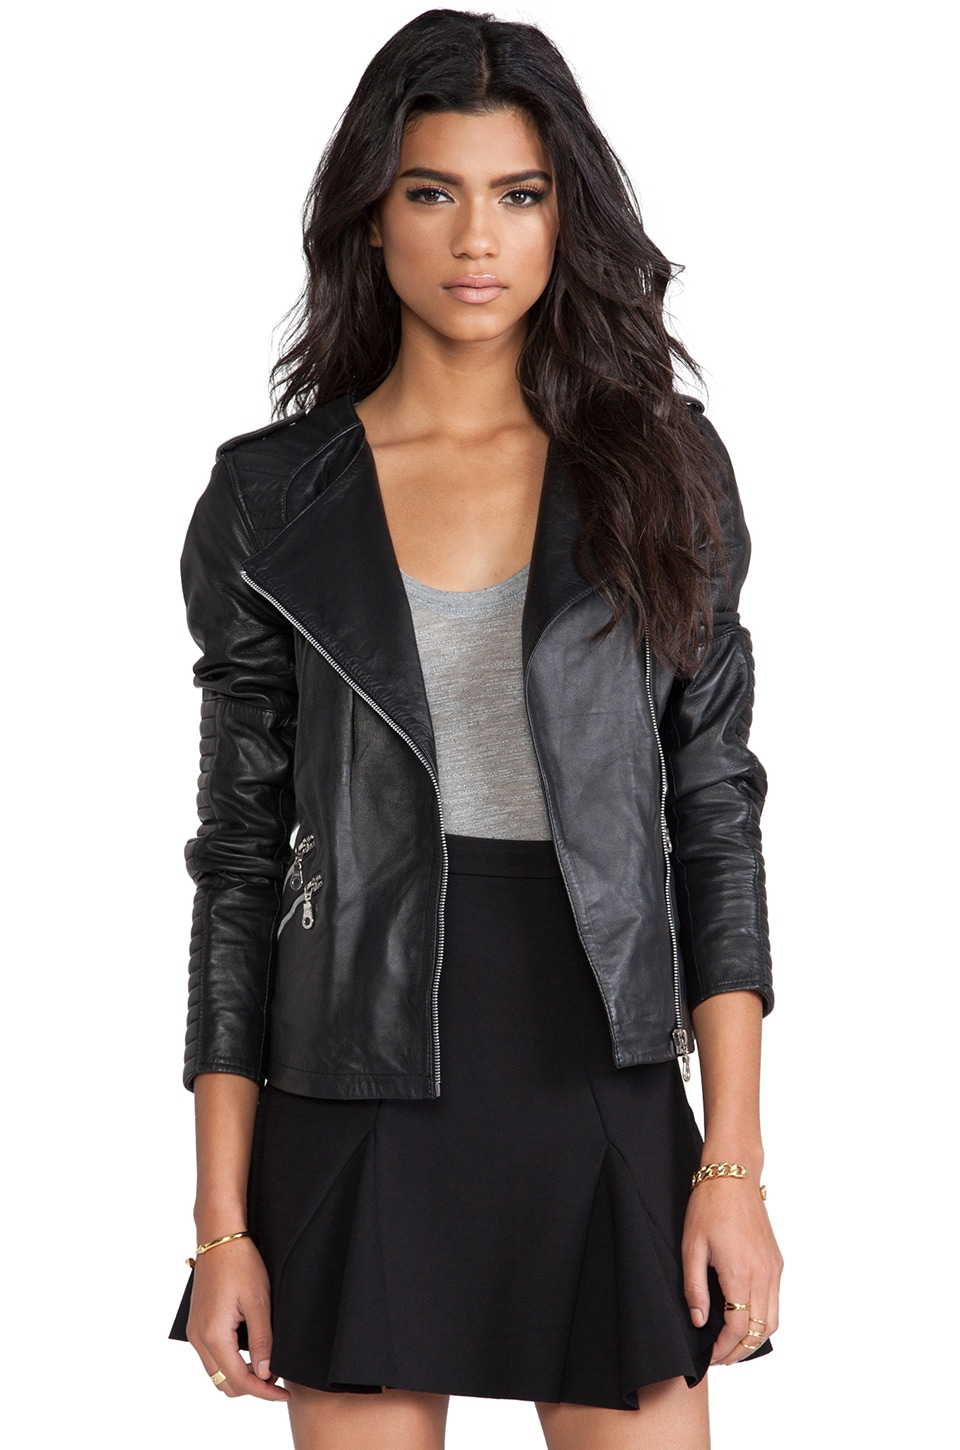 Gestuz Plexi Jacket in Black